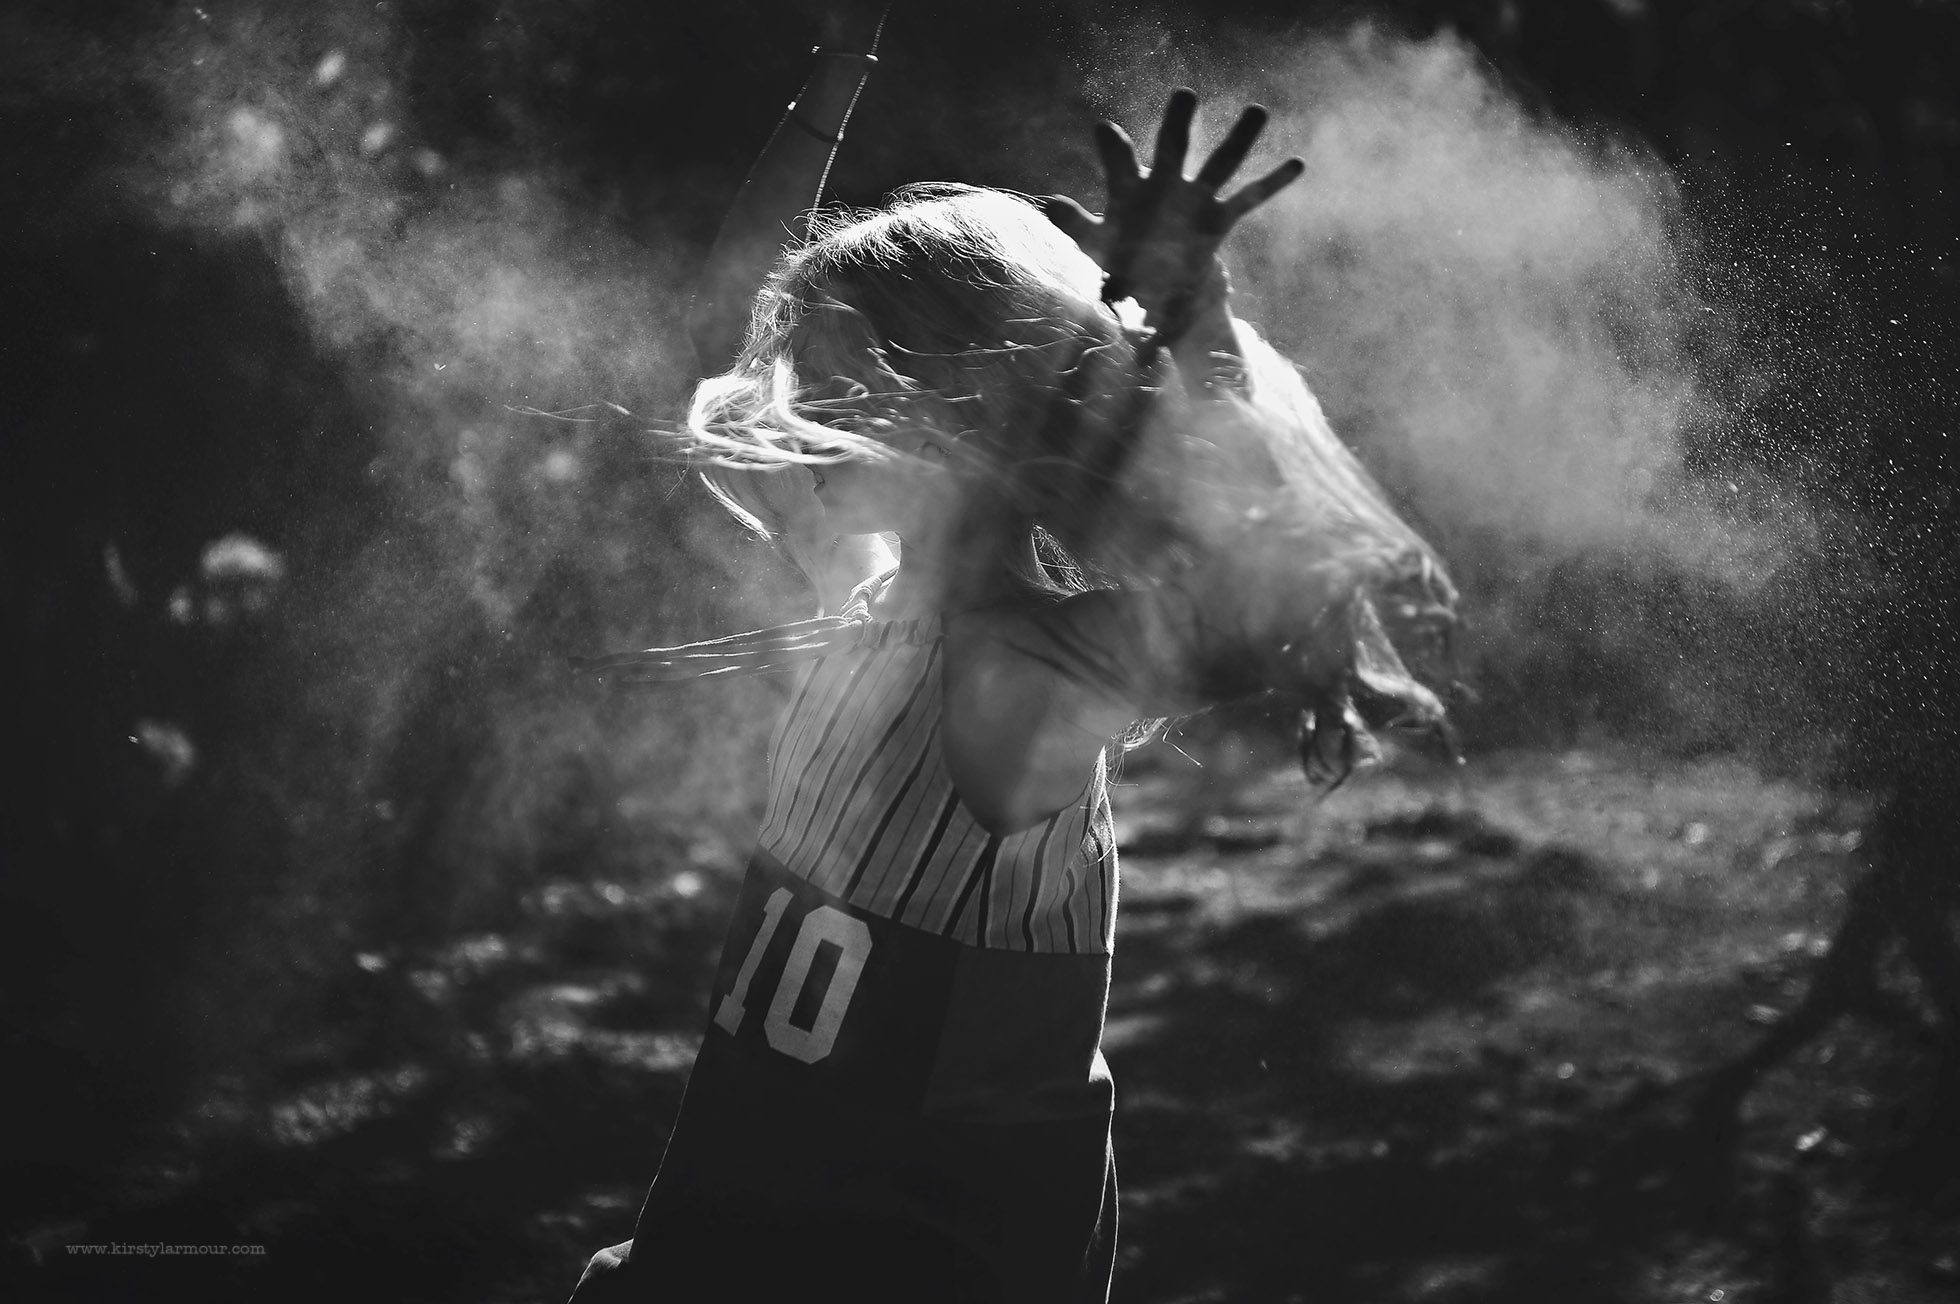 Black and white of a girl spinning in dust | by Kirsty Larmour, Lifestyle Photography